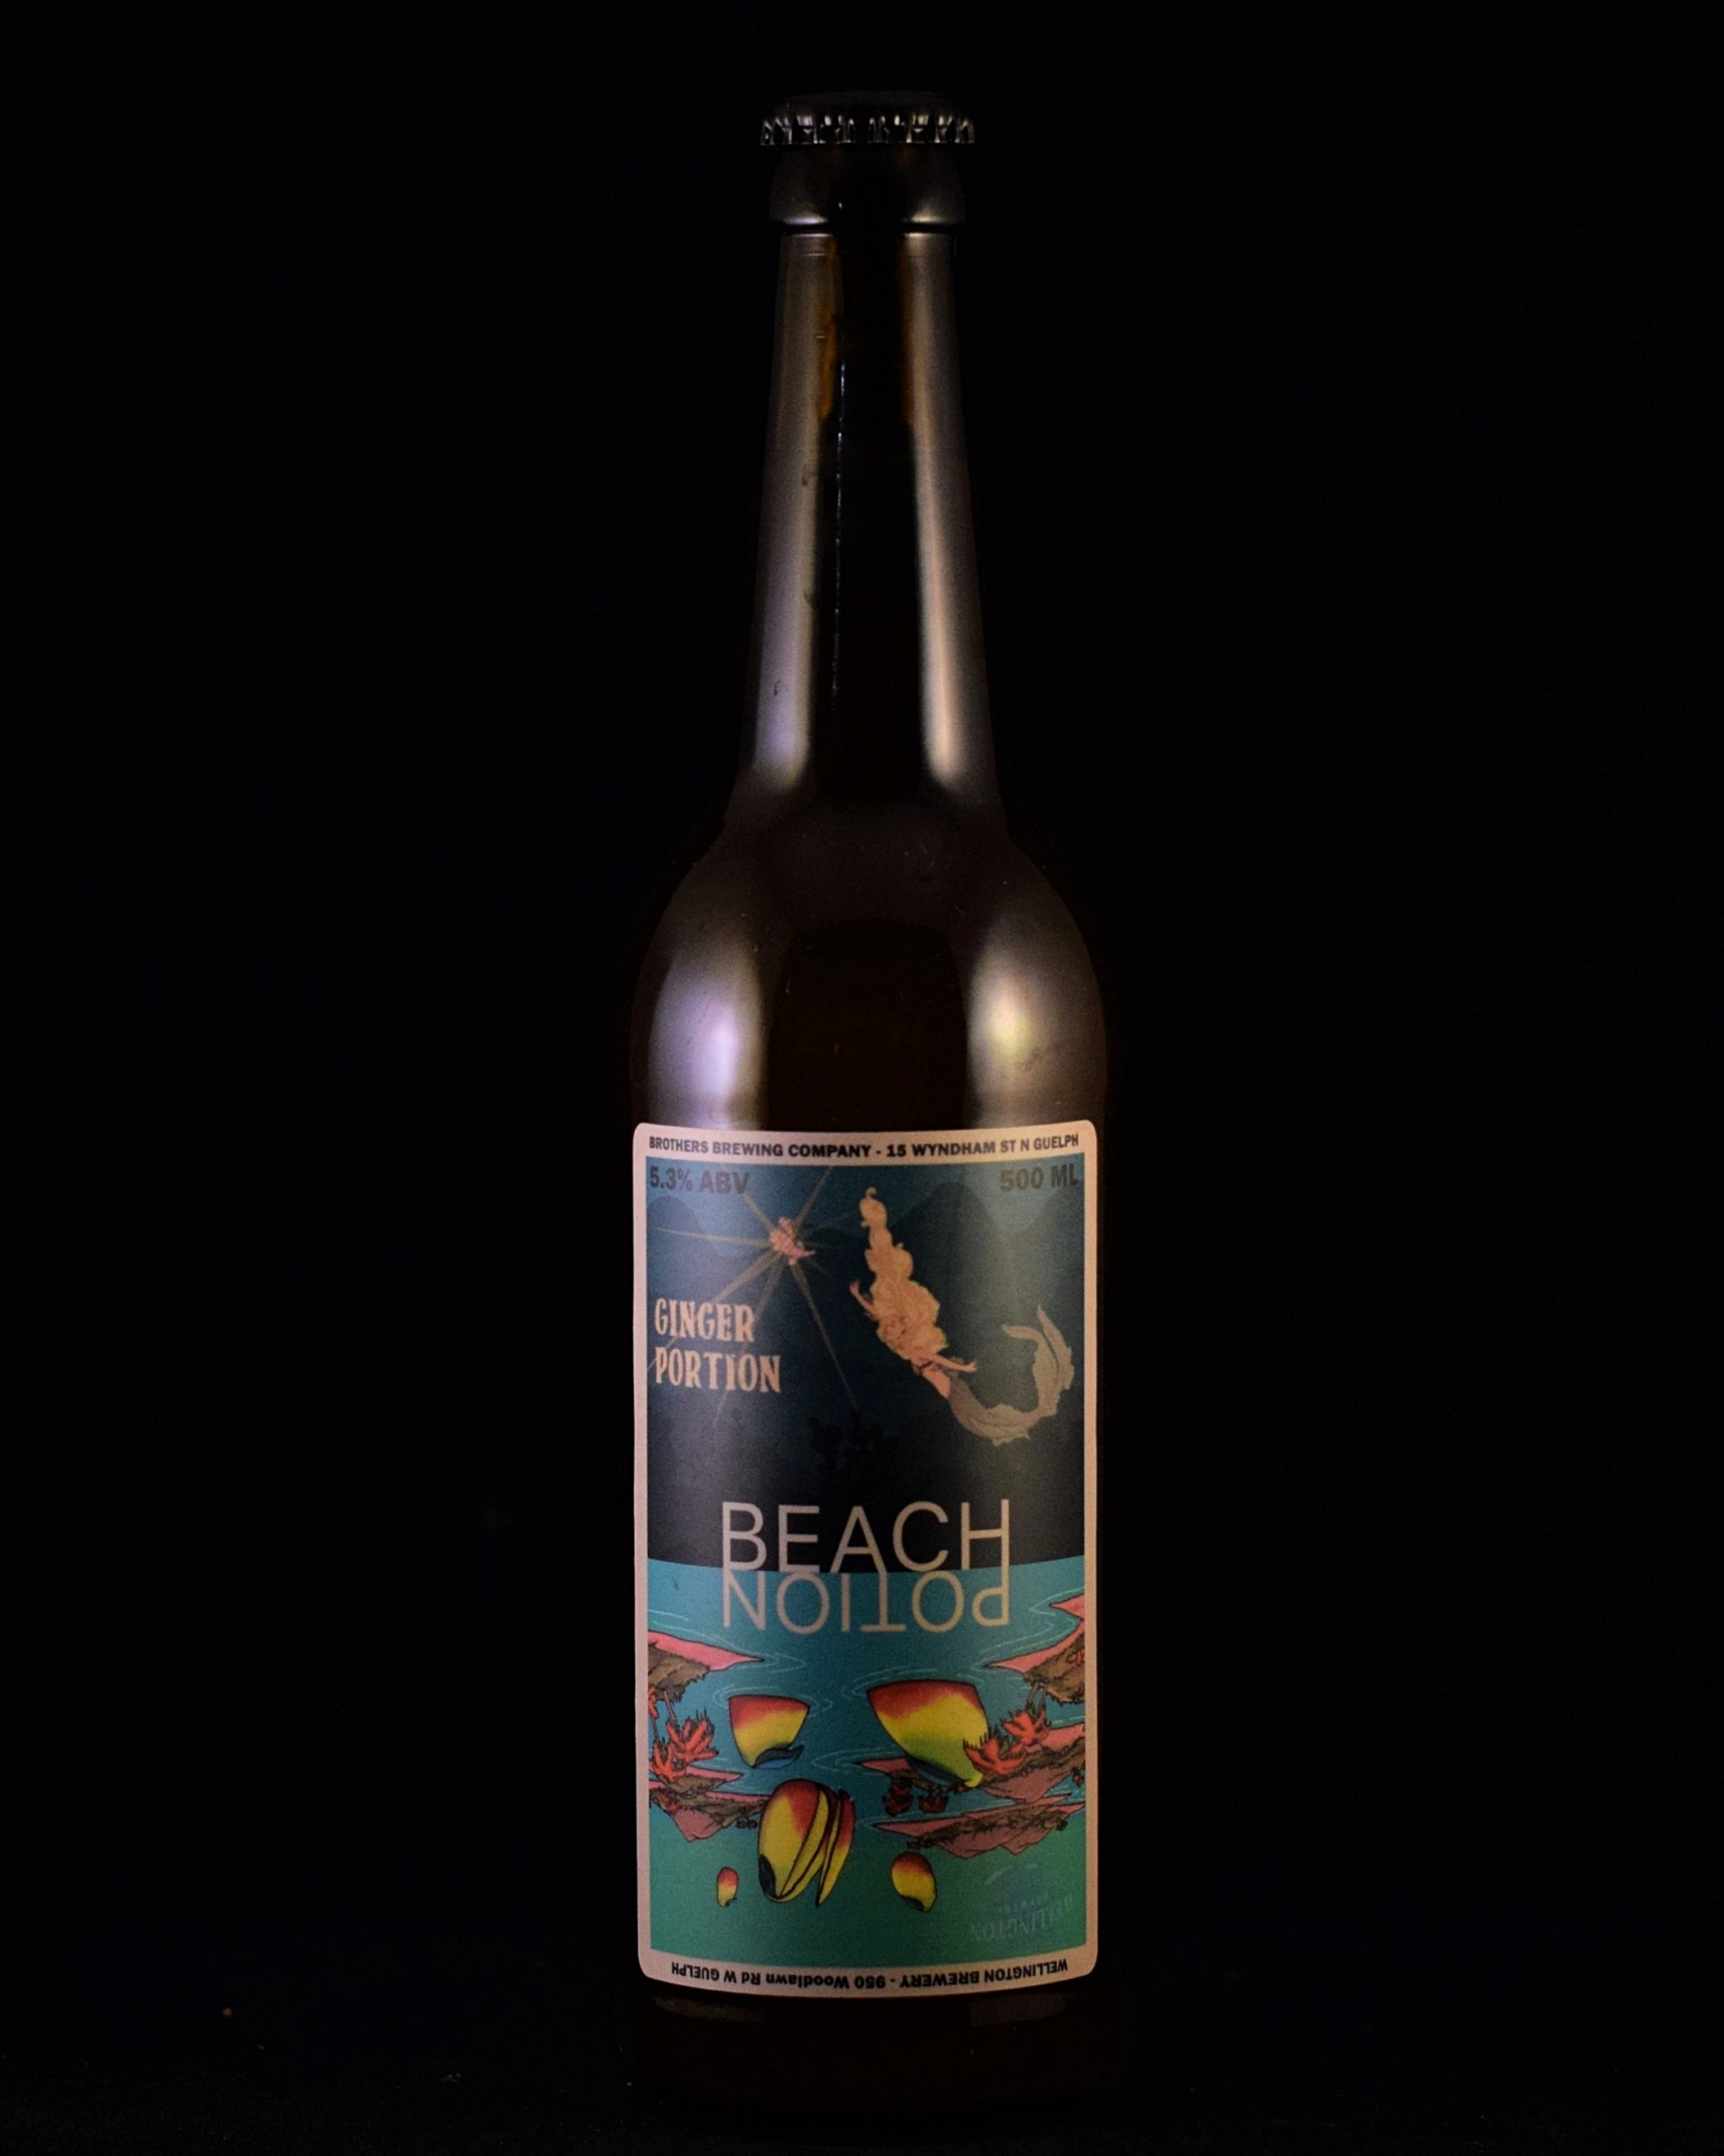 Brothers - Beach Potion (Ginger)